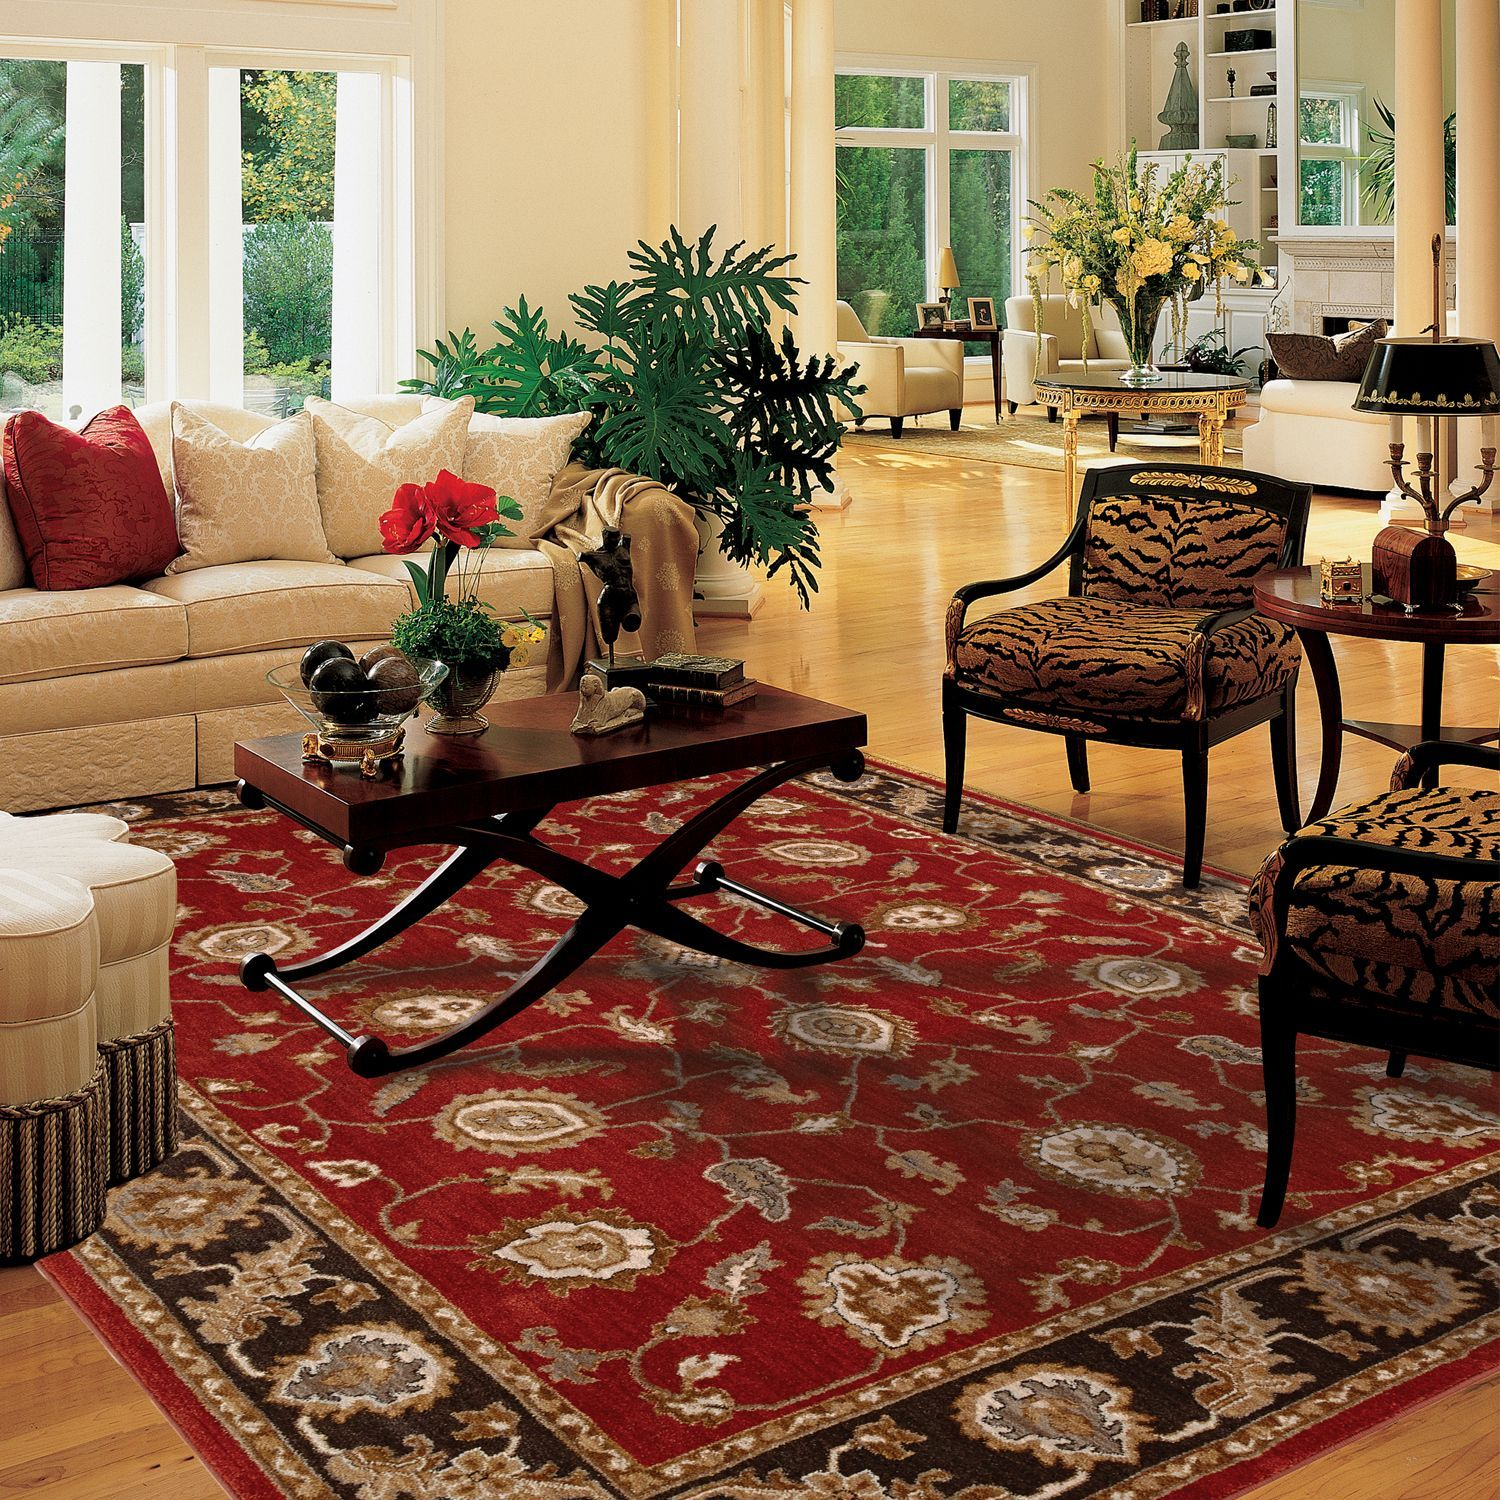 Pacific Living Collection 8x10 Area Rug